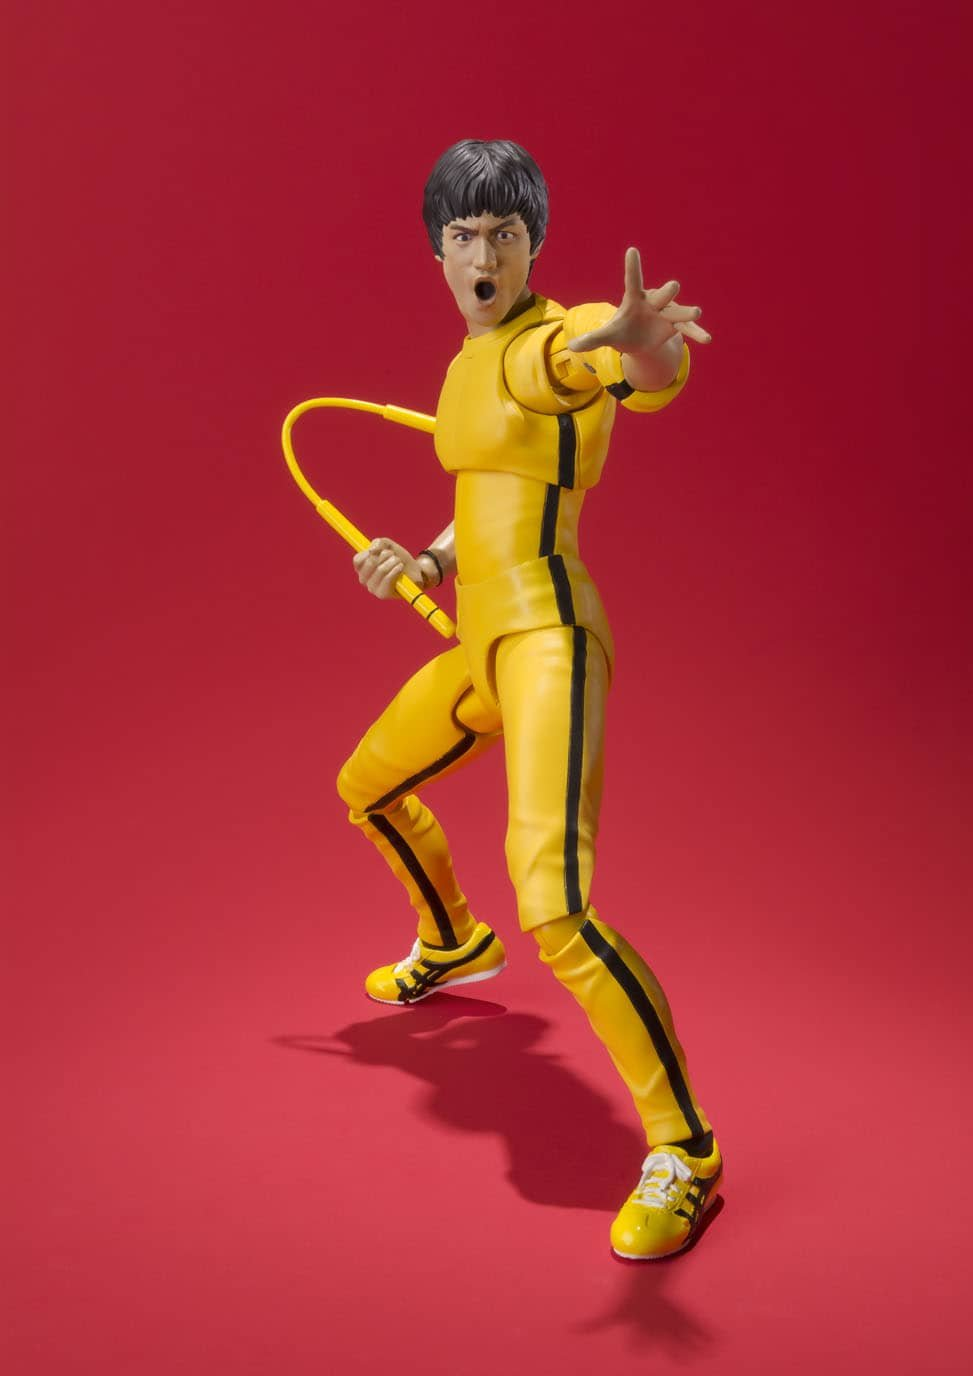 Figuarts Bruce Lee Yellow Track Suit Action Figur Bandai Tamashii Nations S.H